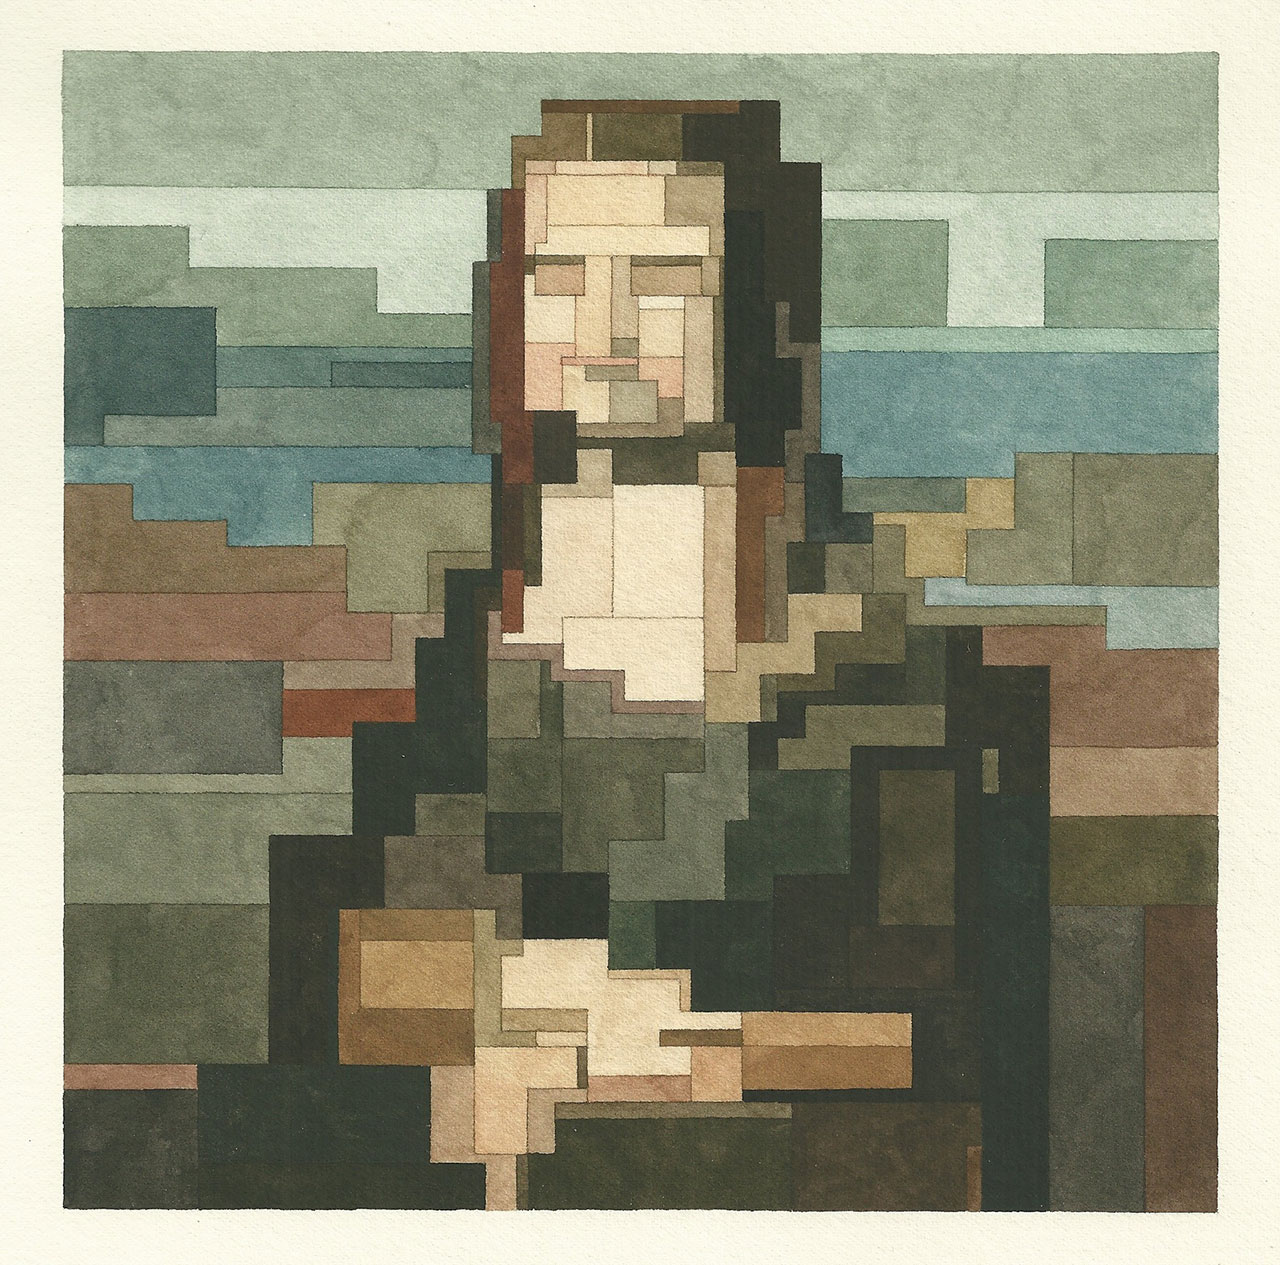 New Pixel Watercolour Paintings by Adam Lister will tell us a history watercolour paintings New Pixel Watercolour Paintings by Adam Lister will tell us a History f9 art history 101 adam lister yatzer